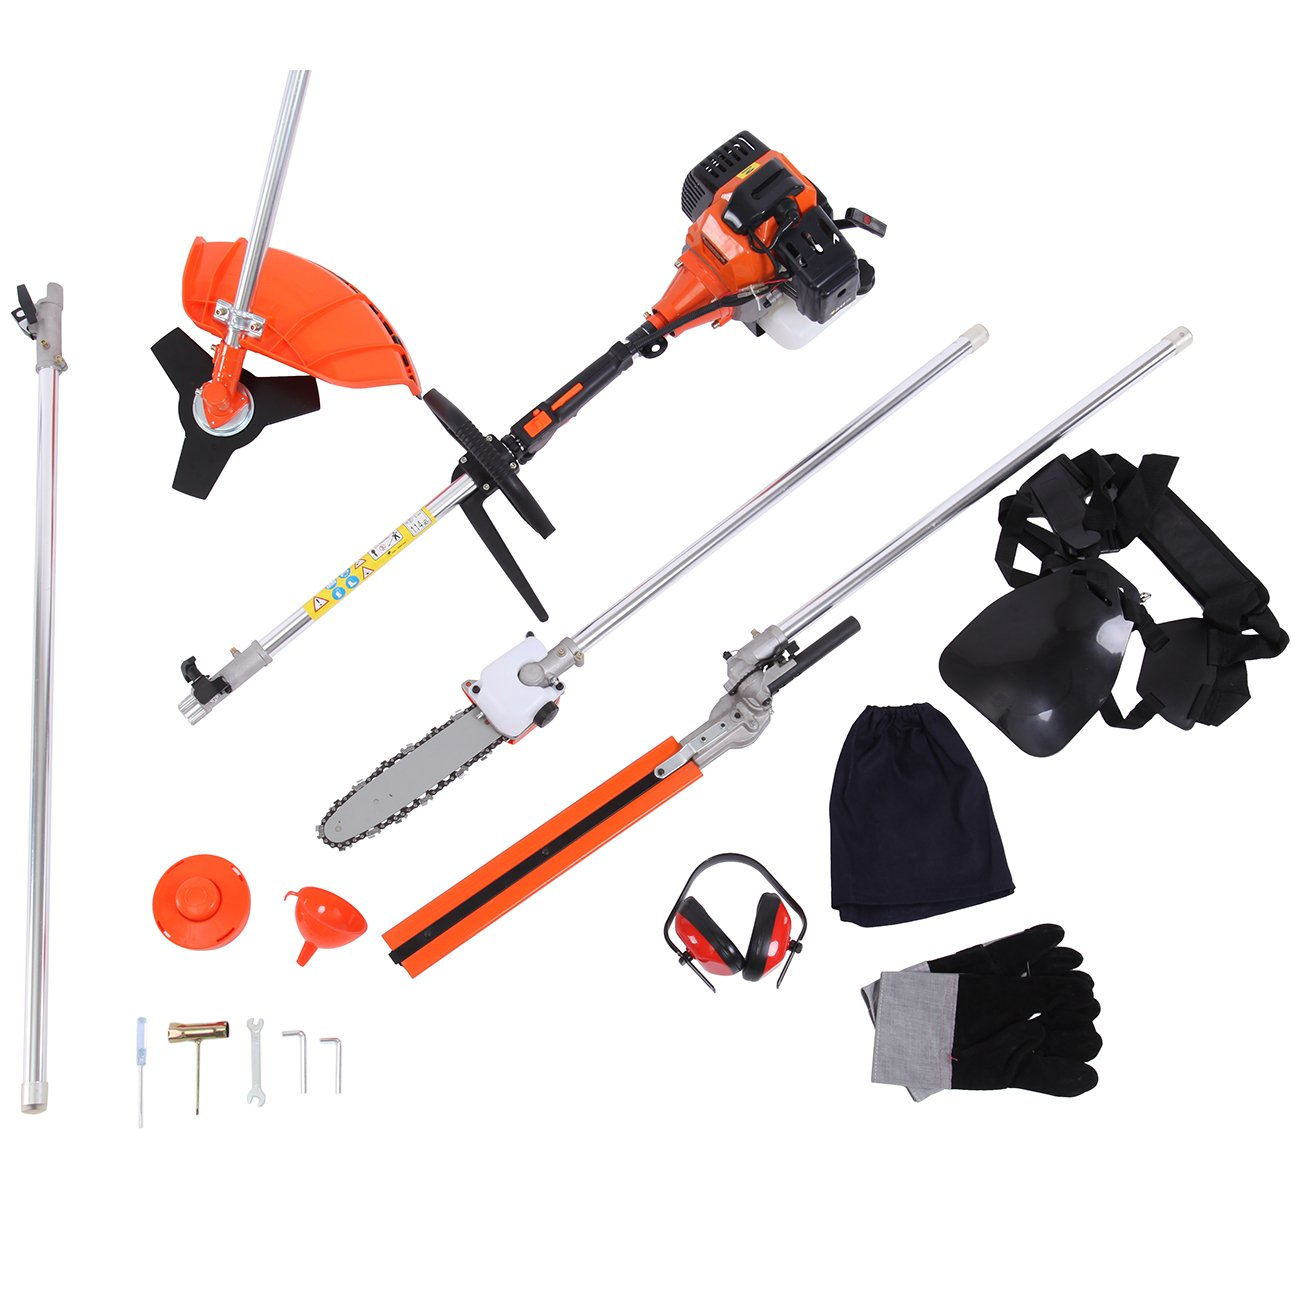 Ambienceo 5 in 1 52CC Multifunctional 2-Stroke Petrol Brush Cutter Grass Trimmer Chainsaw Hedge Trimmer Extension pole